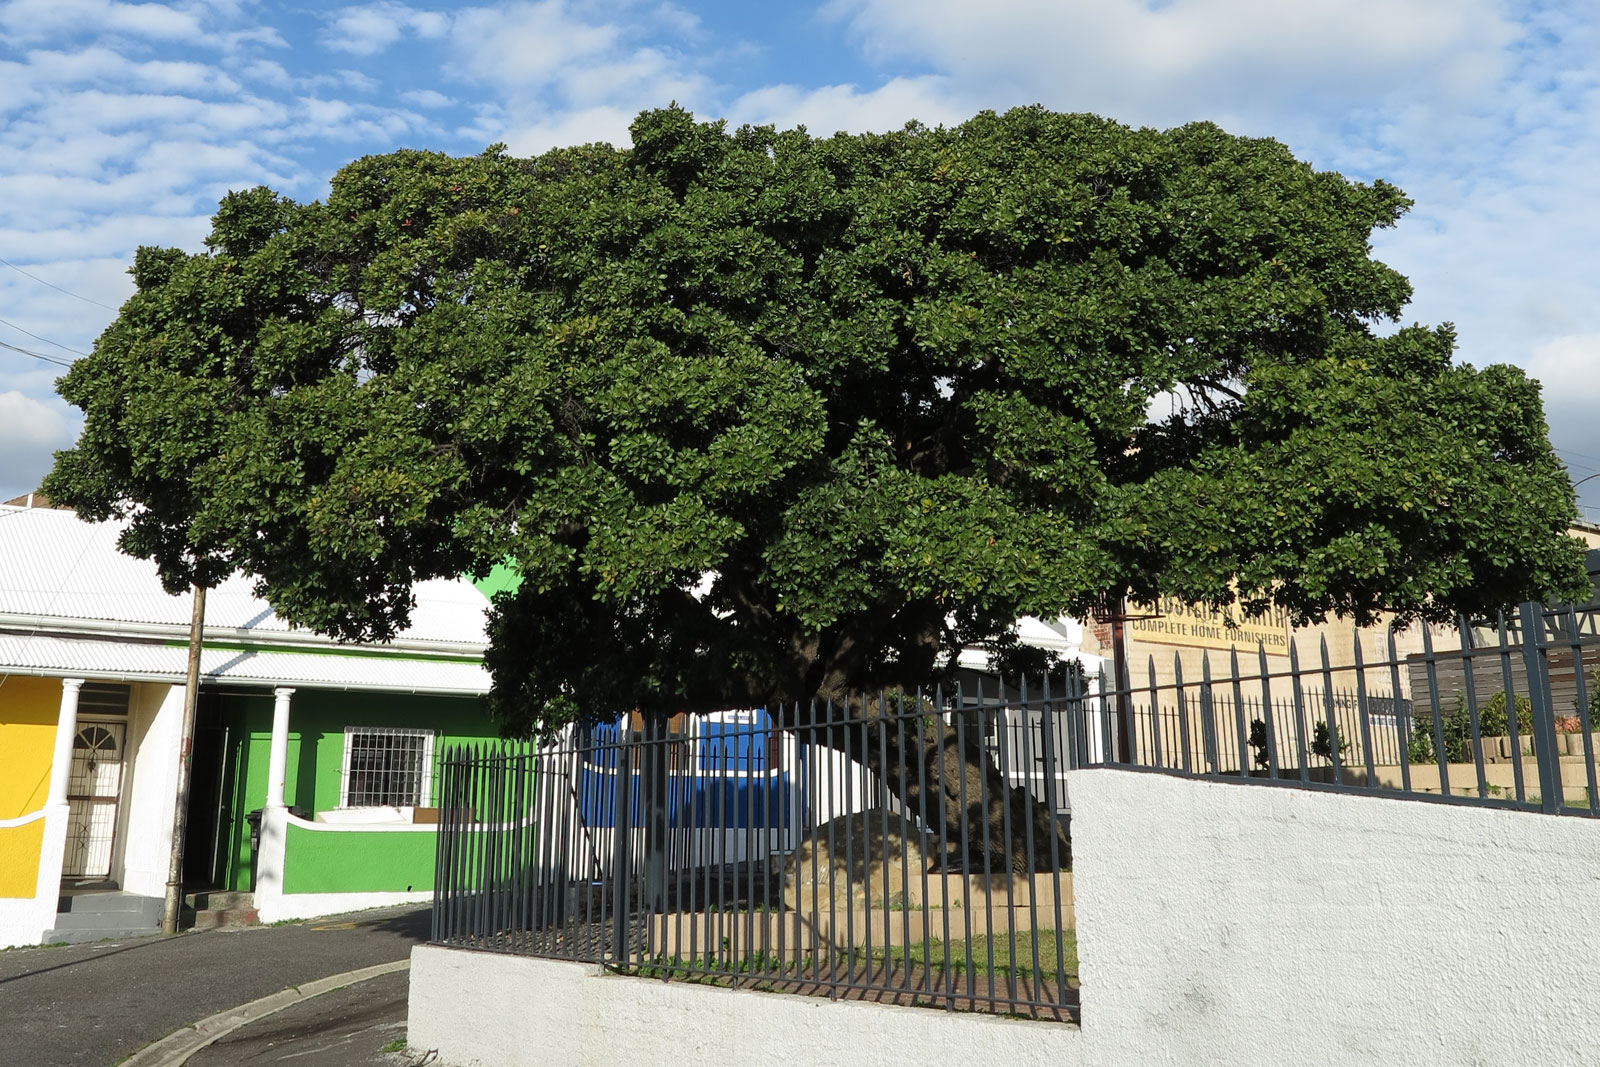 The Treaty Tree is a landmark milkwood tree that marks the spot where control of the Cape passed from the Dutch to the British ©Alison Westwood